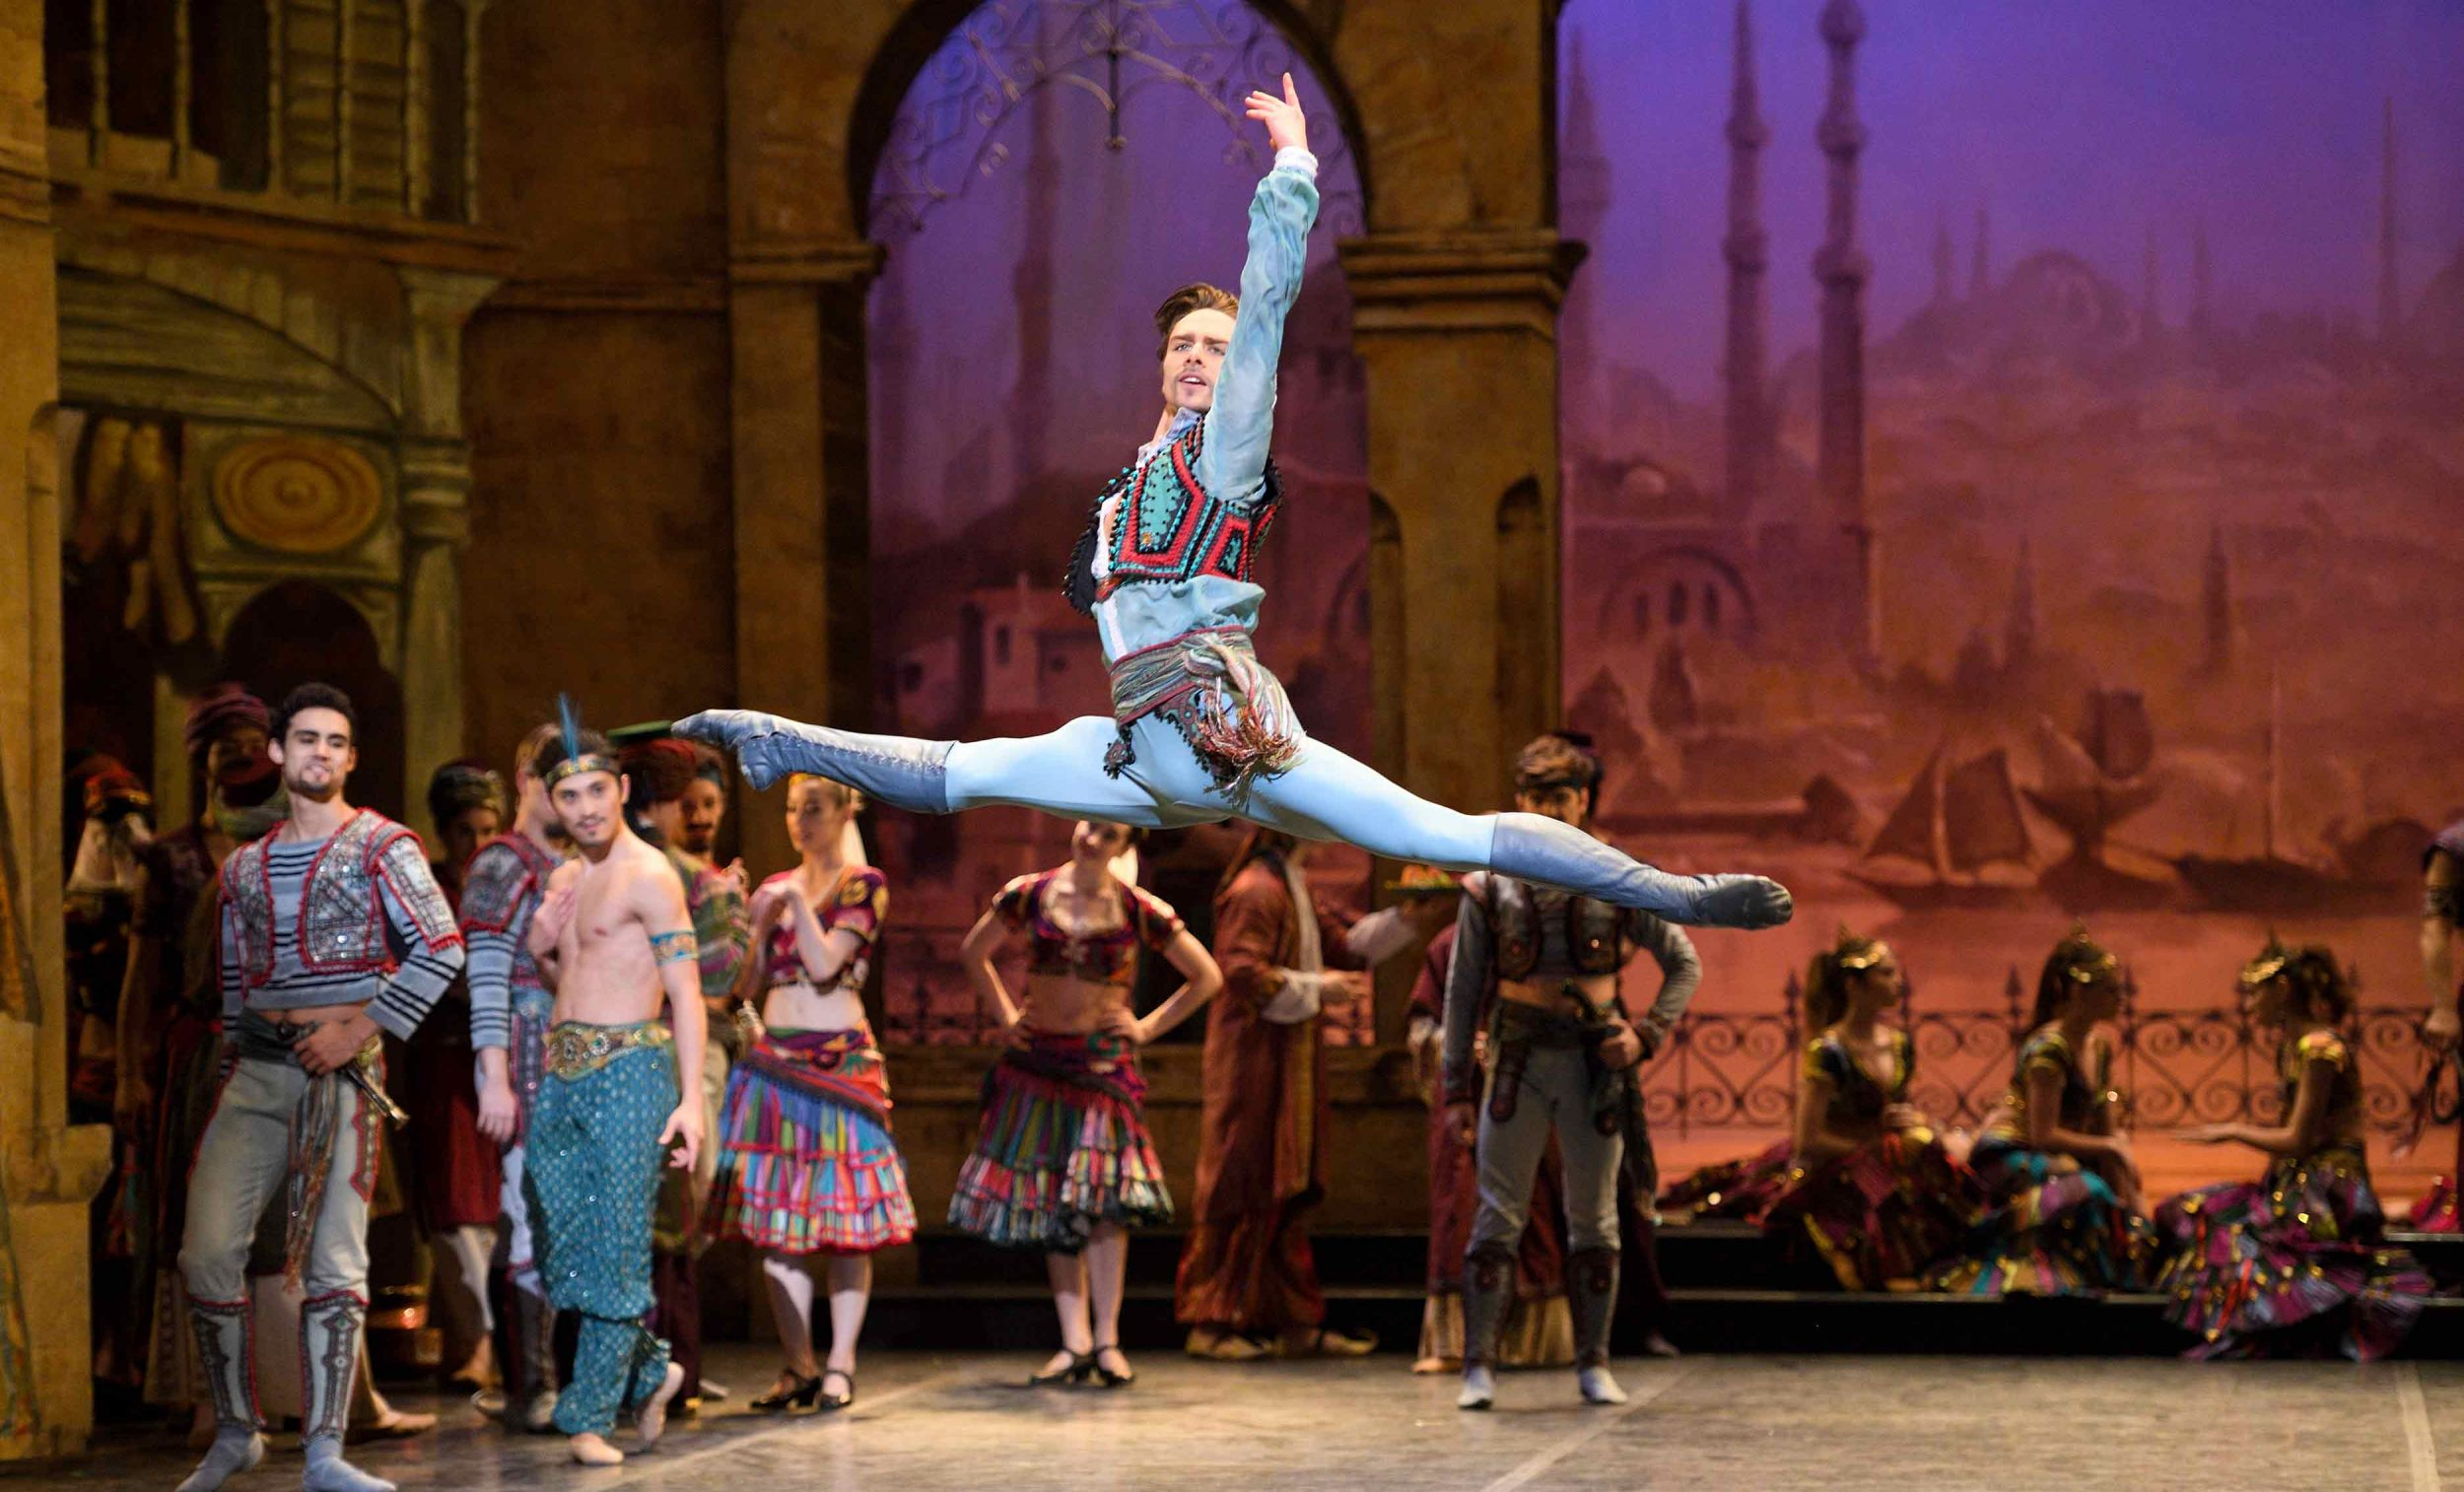 Francesco Gabriele Frola as Conrad in Le Corsaire © Laurent Liotardo.